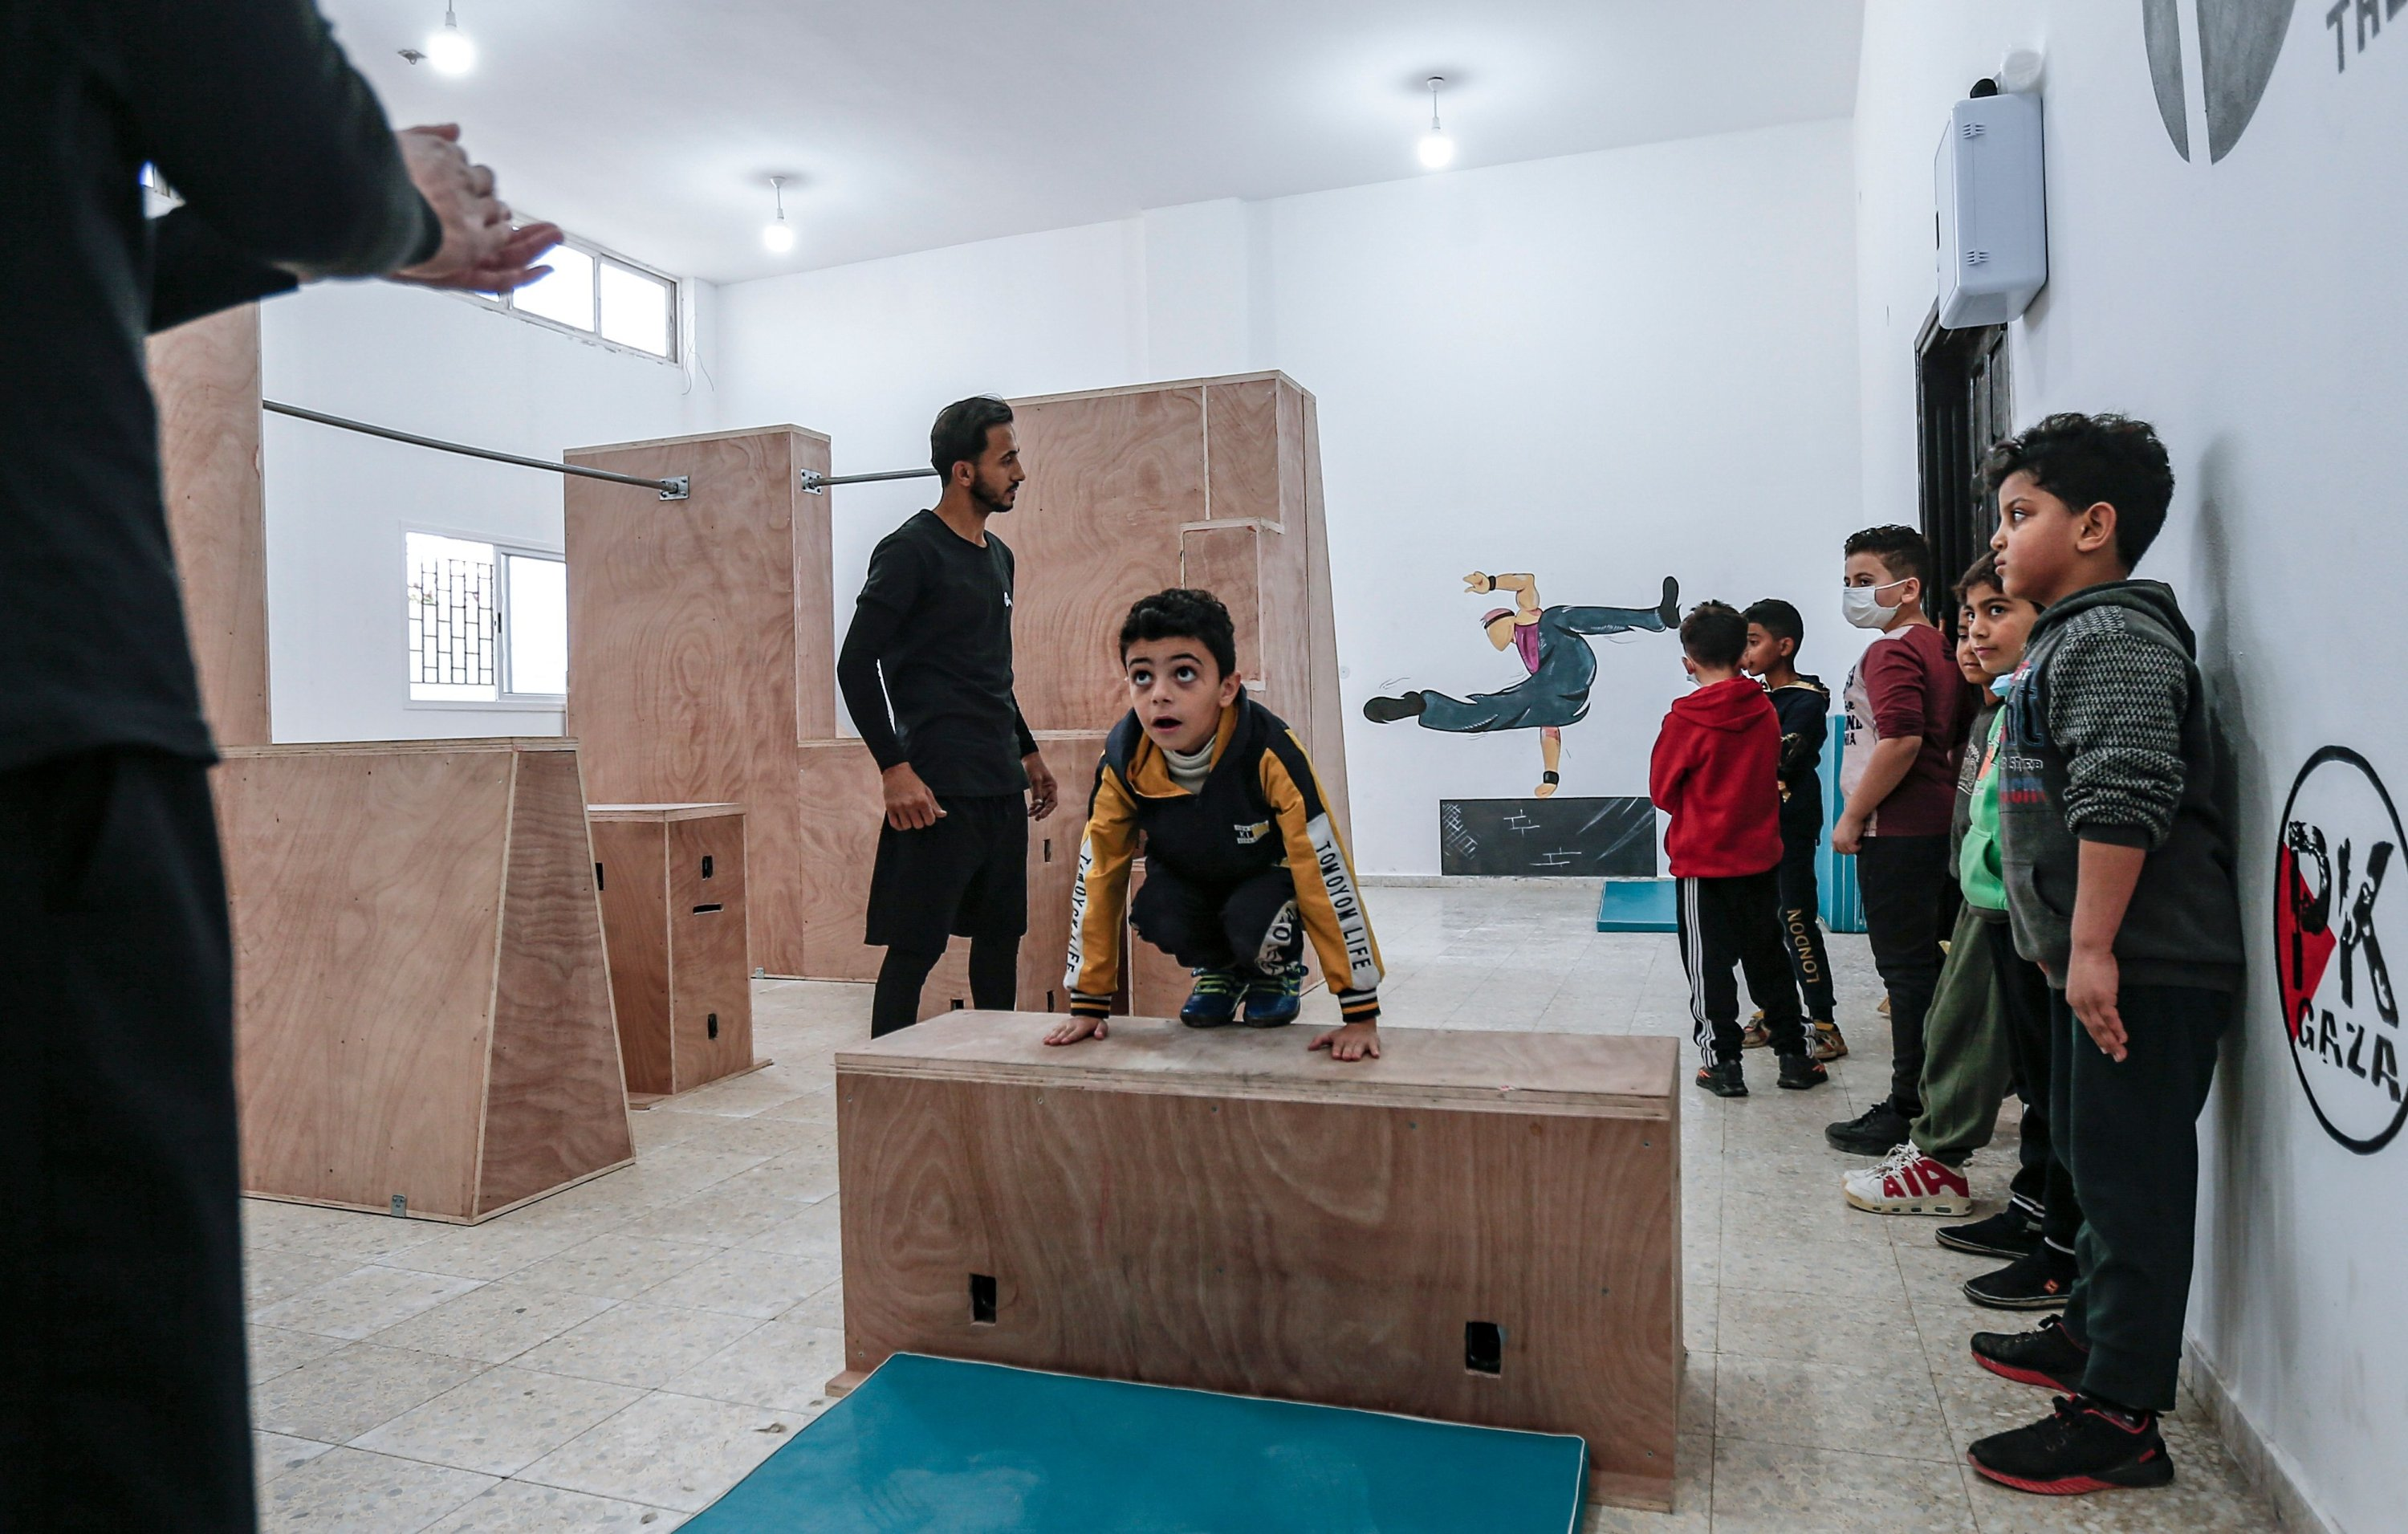 A coach trains Palestinian children at the Wallrunners Parkour Academy's training facility in Gaza City, Dec. 28, 2020. (AFP Photo)